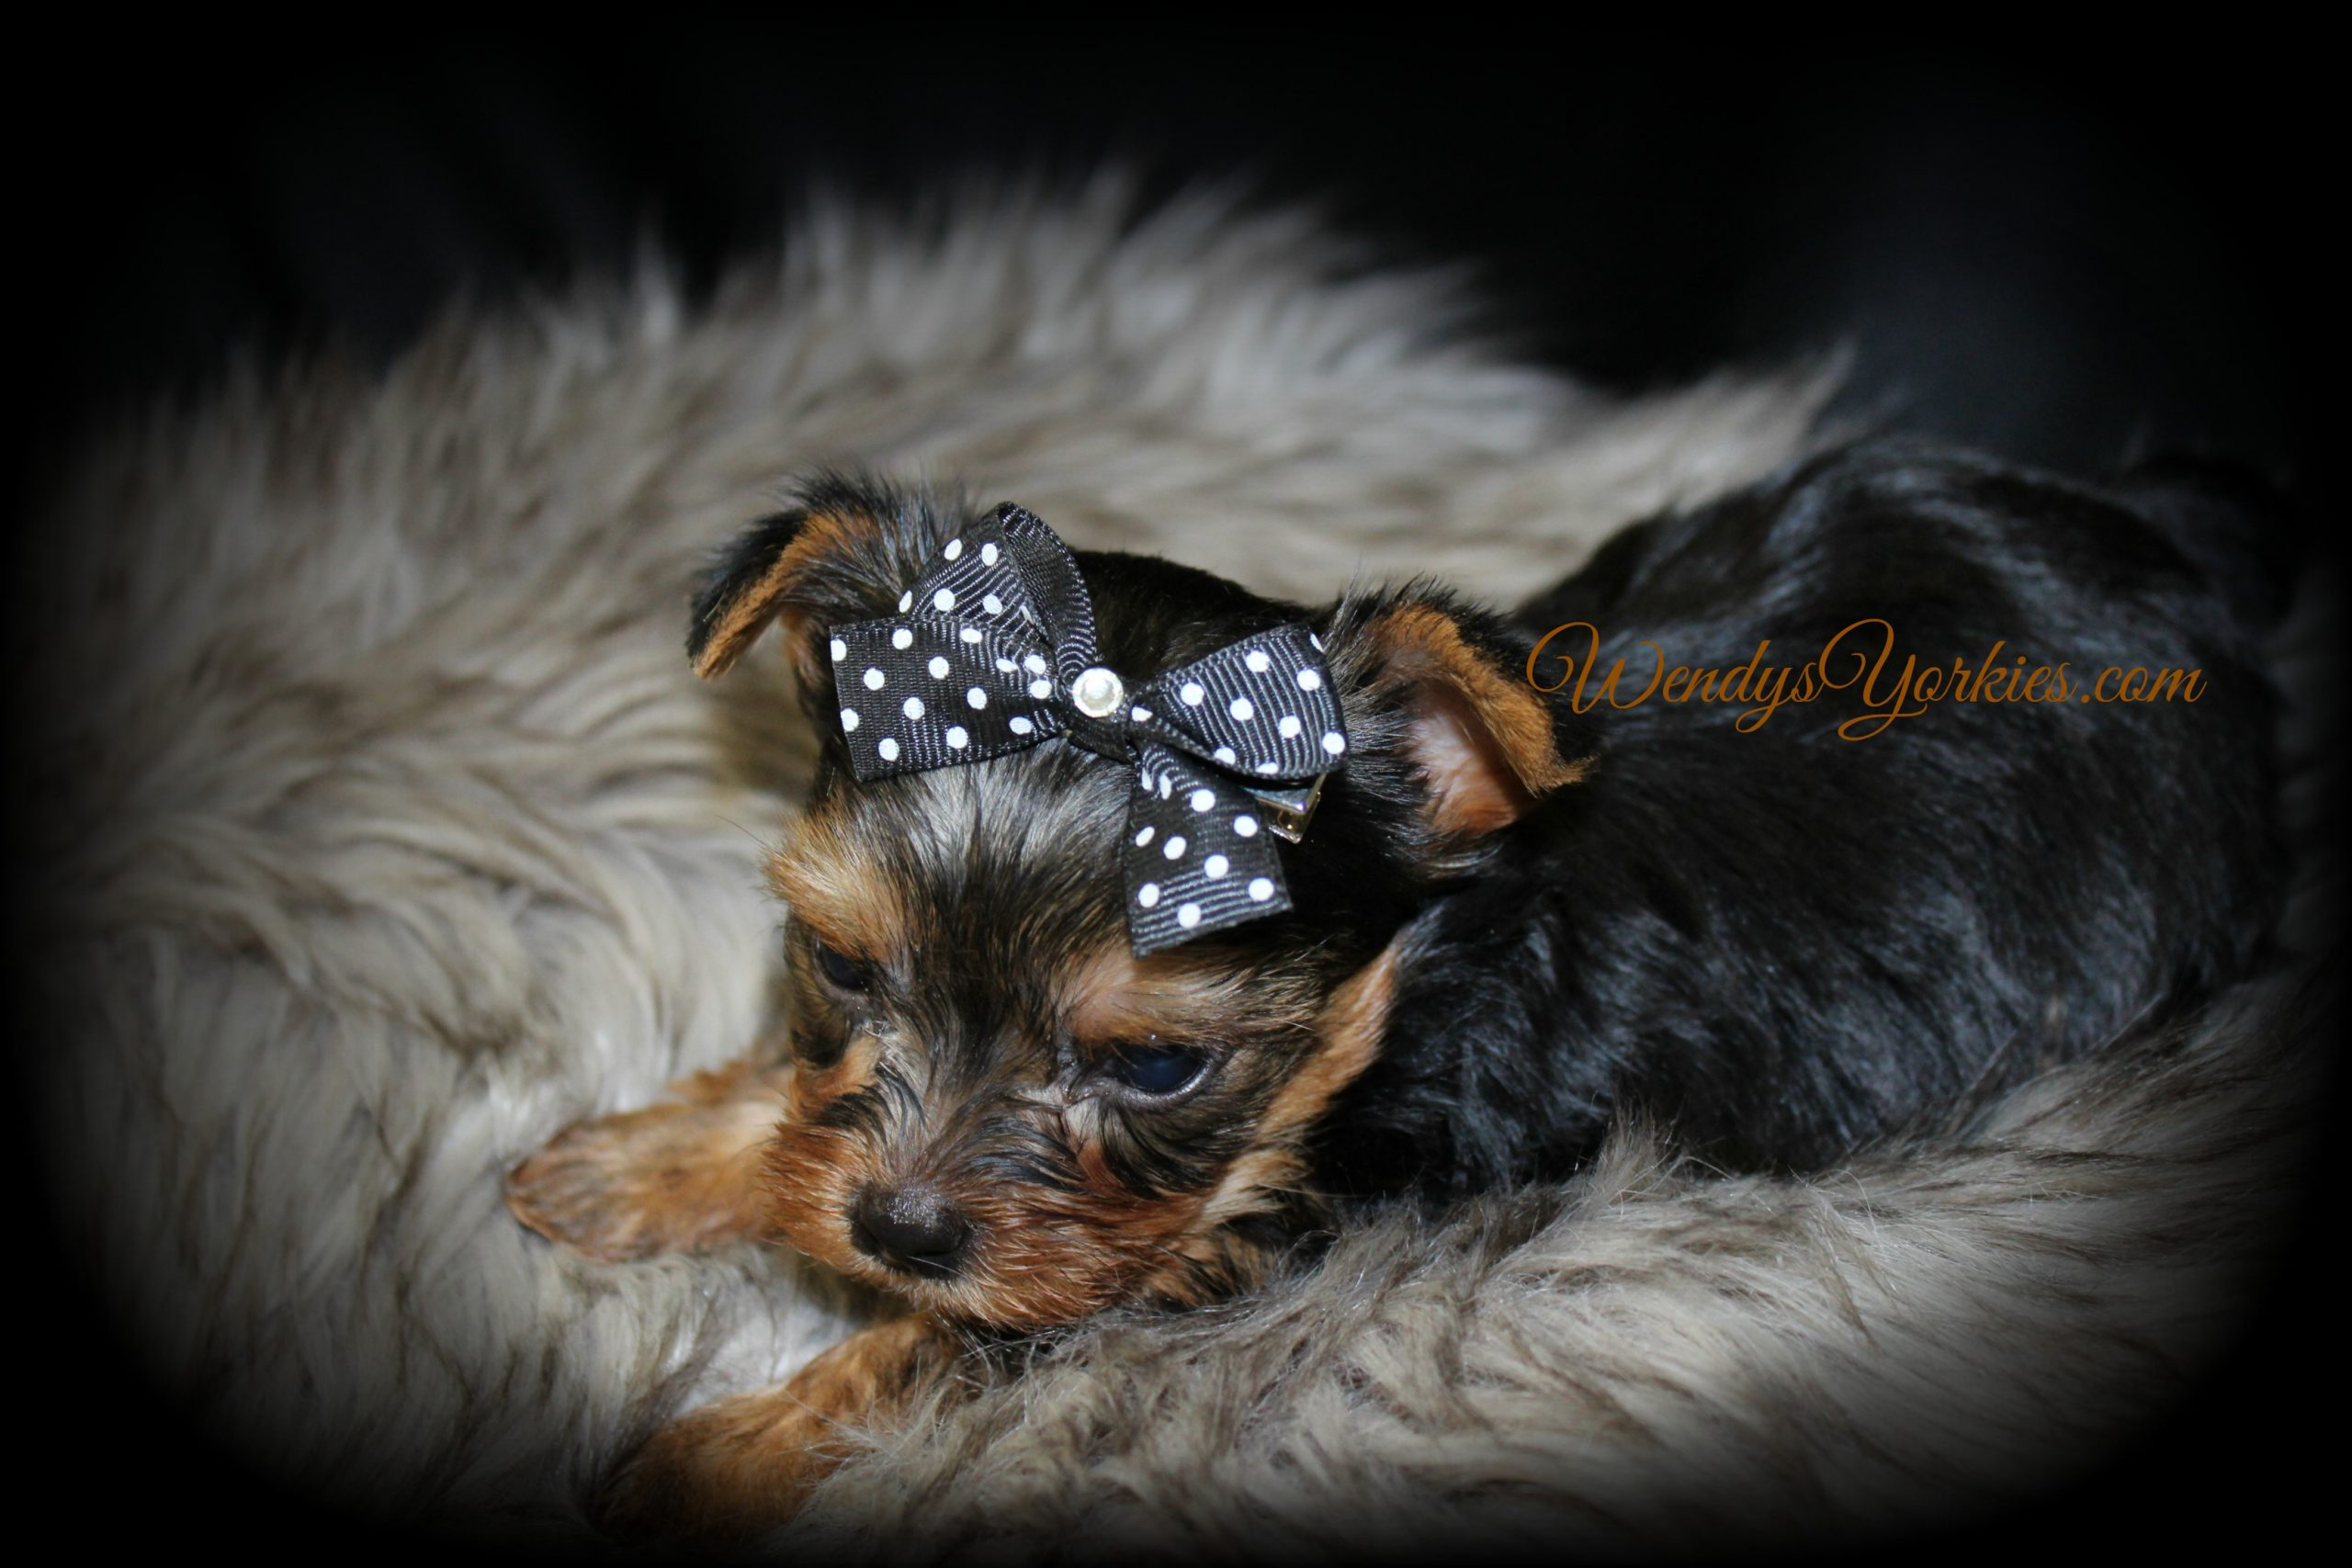 Yorkie puppies for sale in Texas, Grace m2, WendysYorkies.com